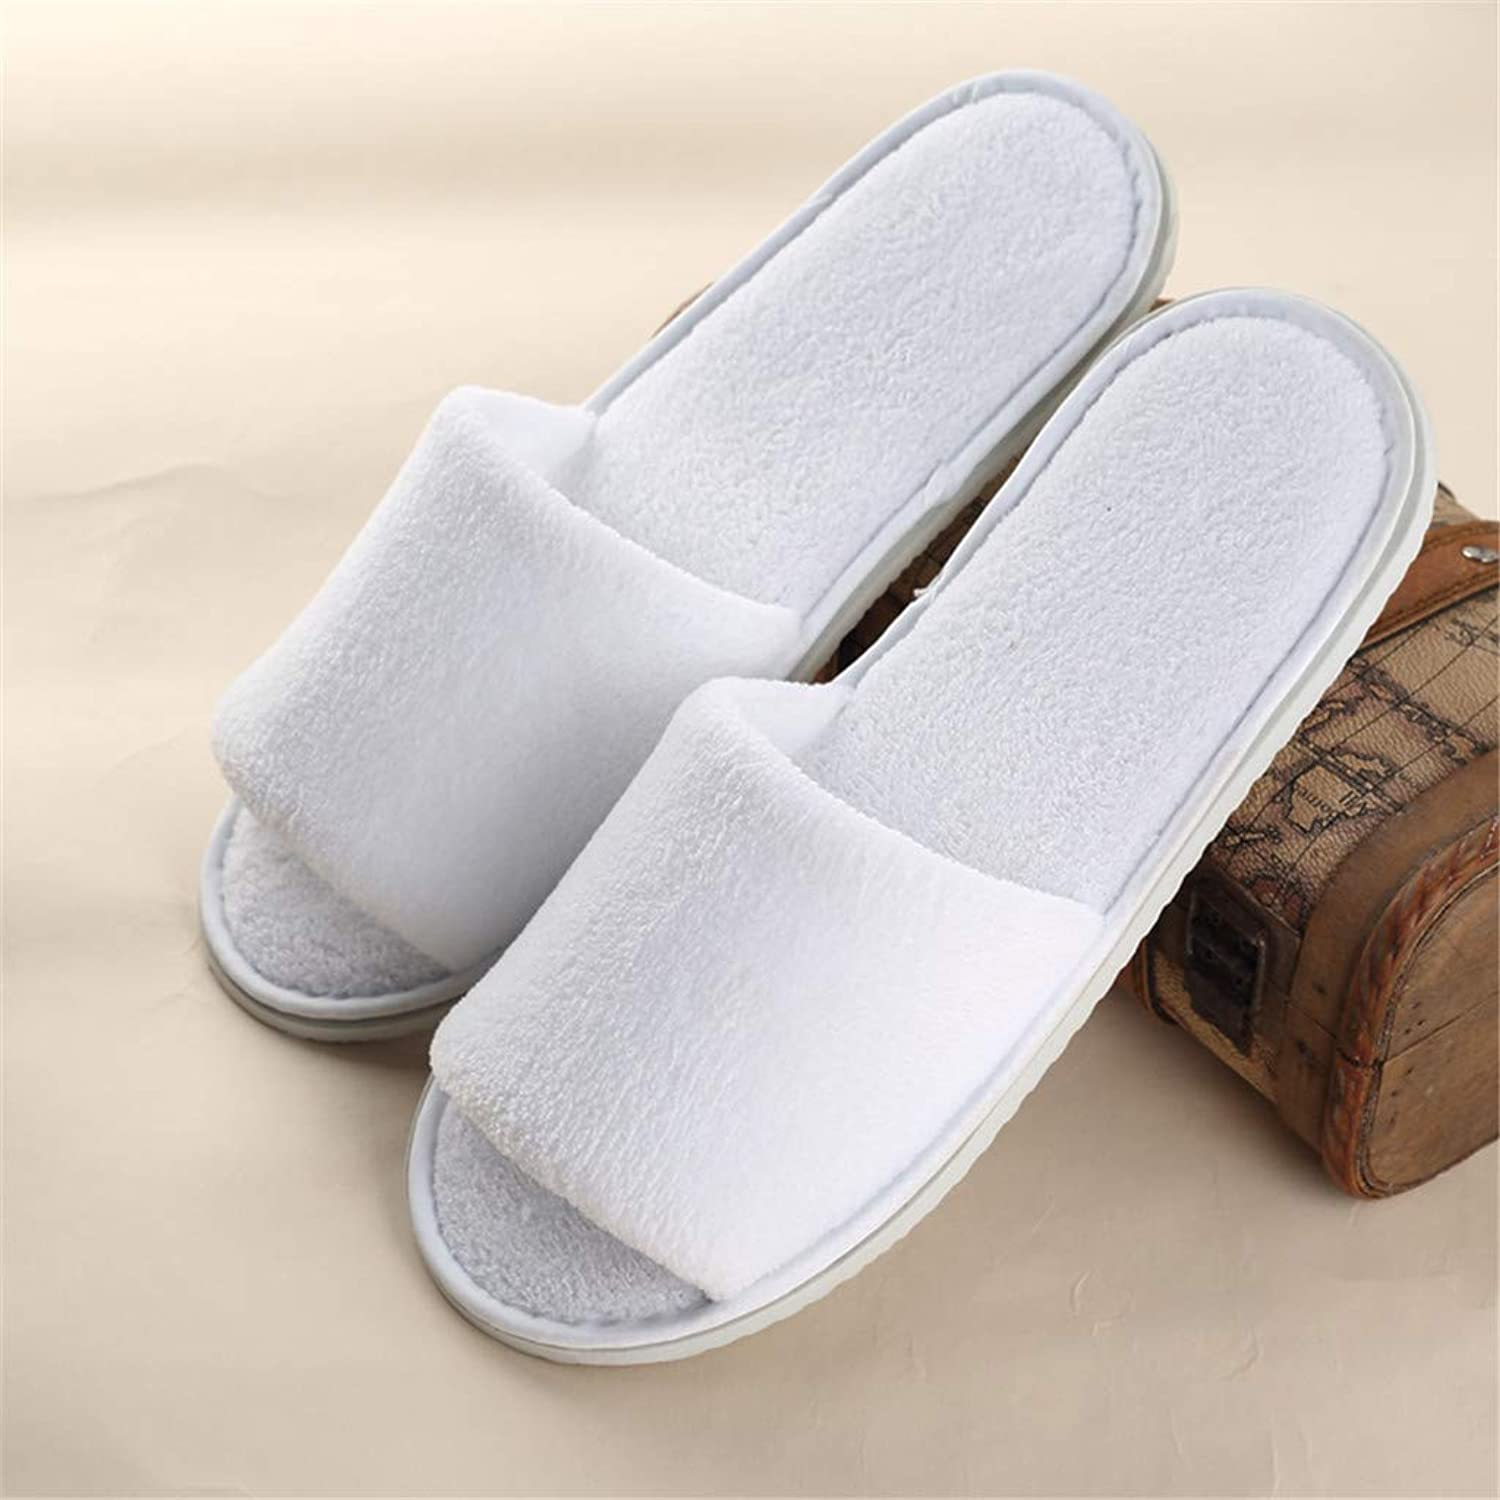 10 Pairs Disposable Spa Slippers - Coral Fleece Comfortable and Non-Slip - Perfect for Home, Hotel Commercial Use,White,Open